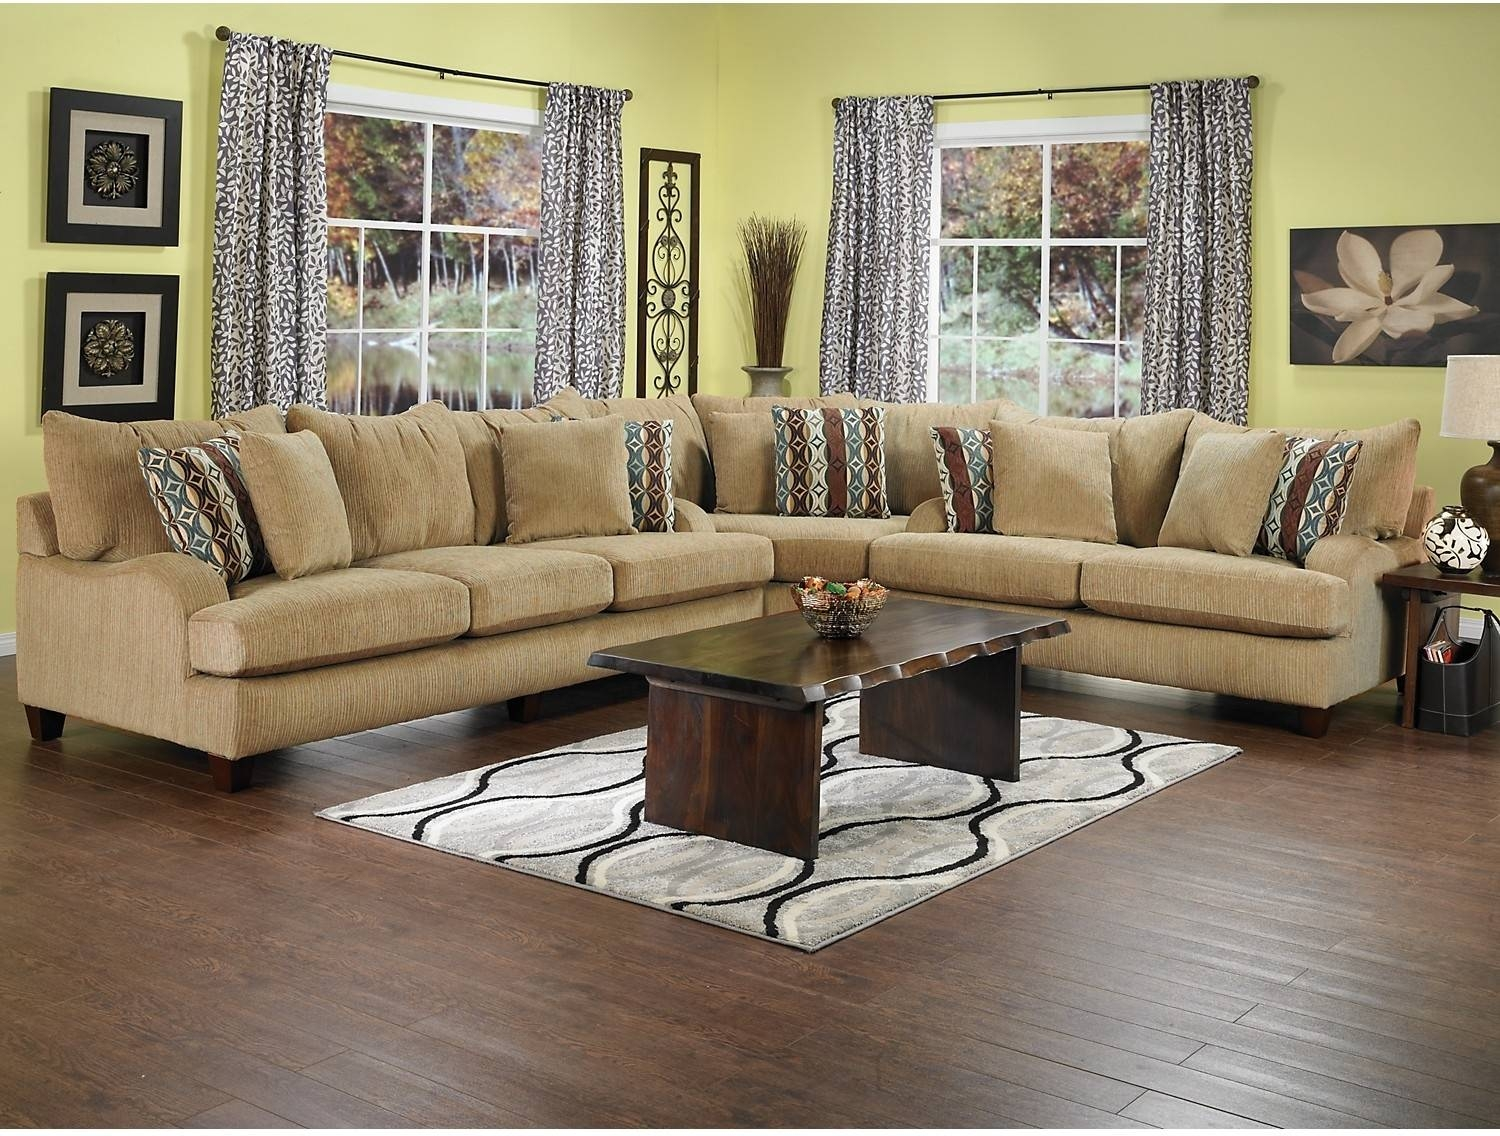 12 Collection Of Chenille Sectional Sofas intended for Chenille and Leather Sectional Sofa (Image 3 of 30)